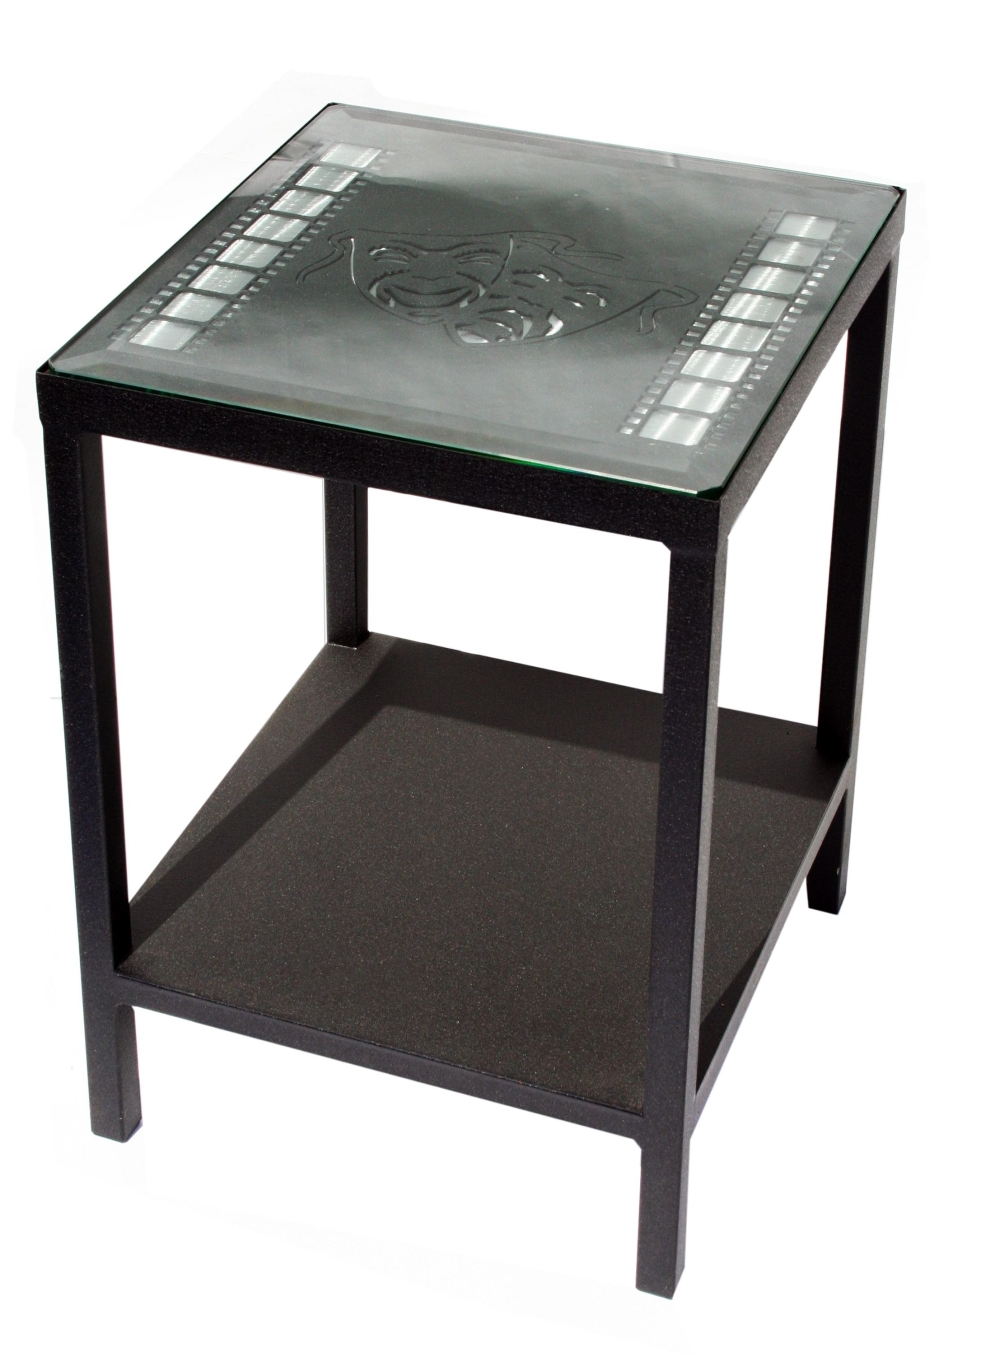 TheaterThemed End Table with Film Strips Stargate Cinema